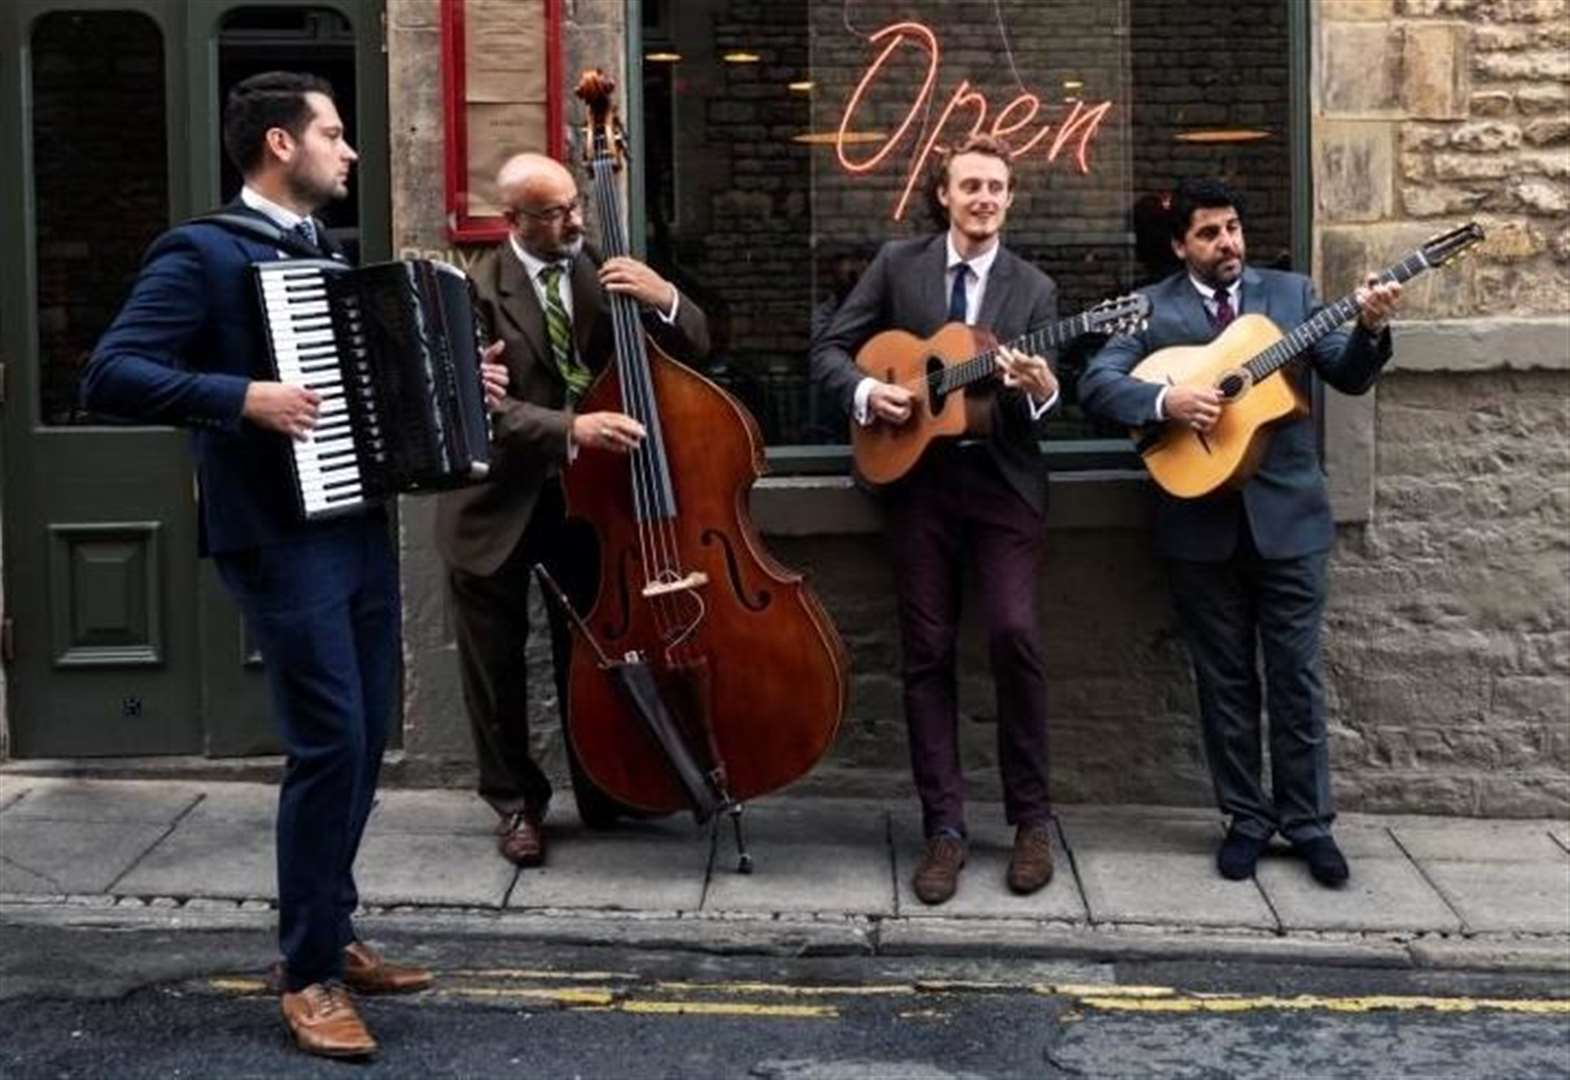 Jonny Kerry Quartet will take you on a musical journey